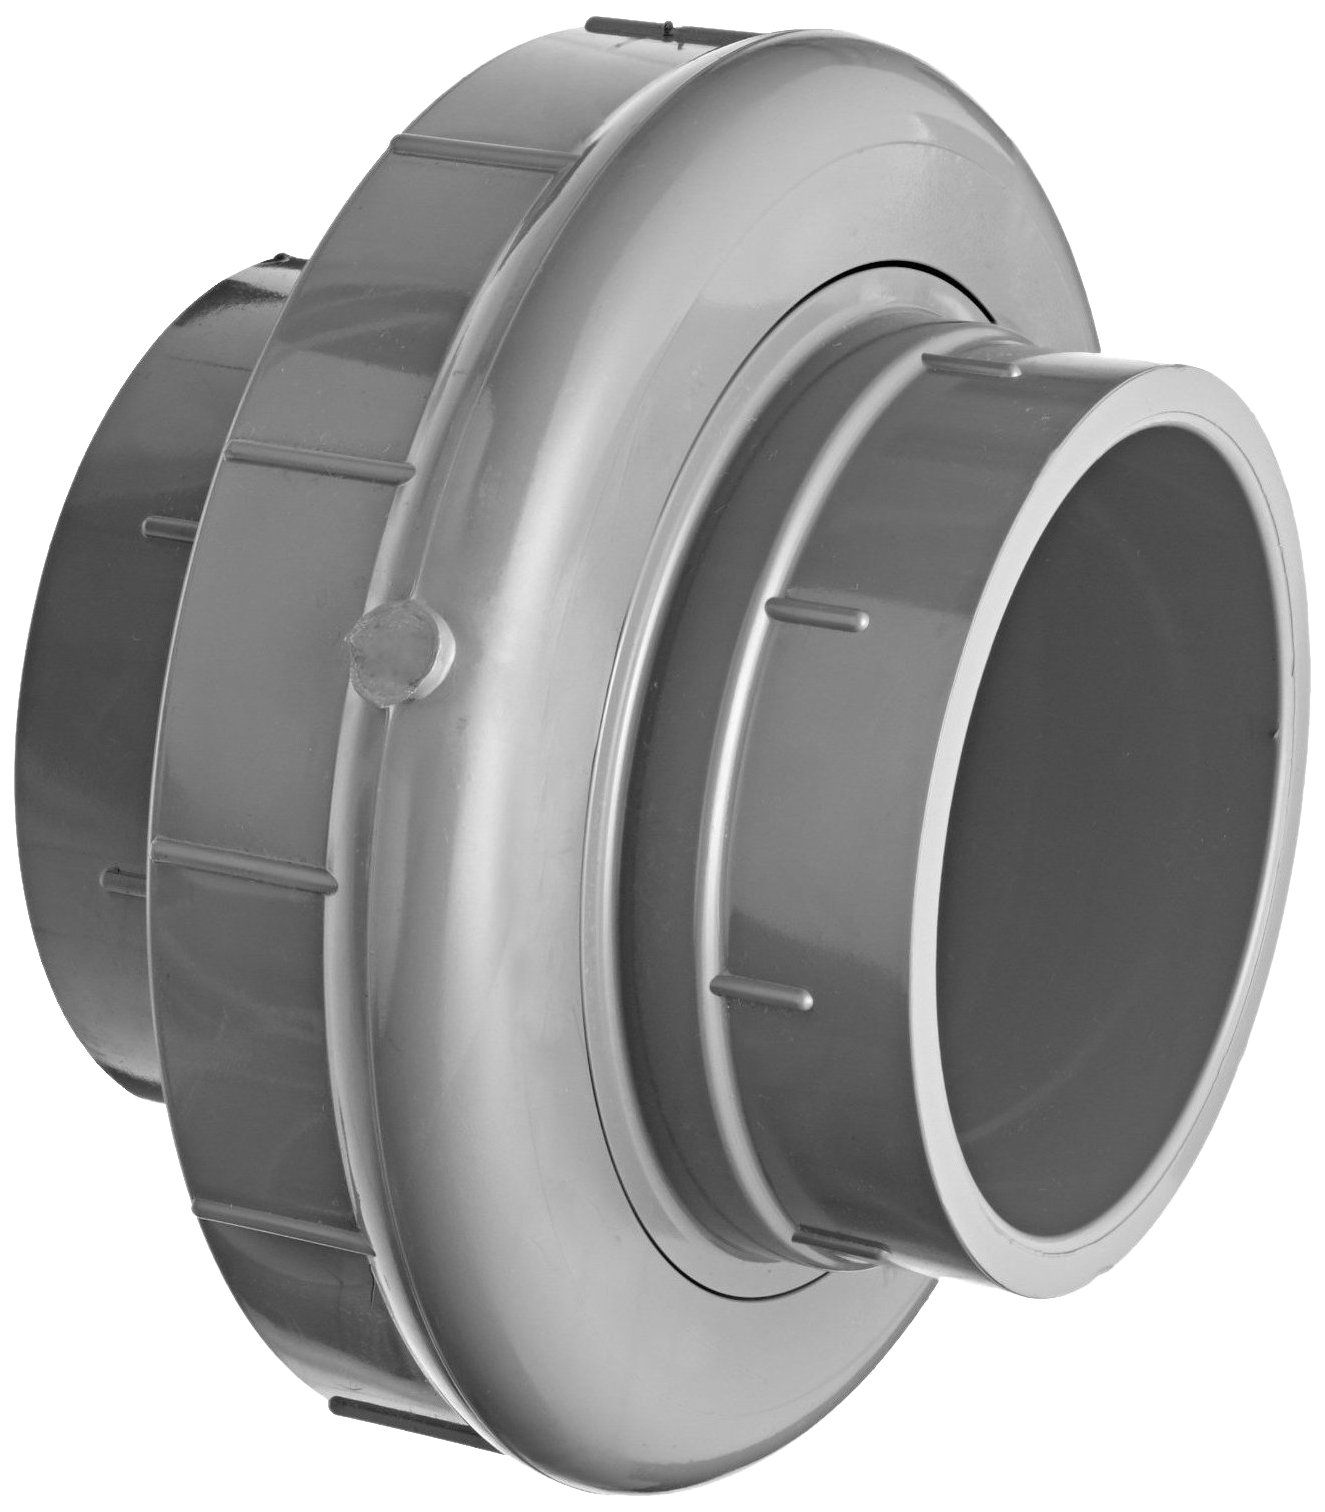 GF Piping Systems PVC Pipe Fitting, Union, Schedule 80, Gray, 4'' Slip Socket